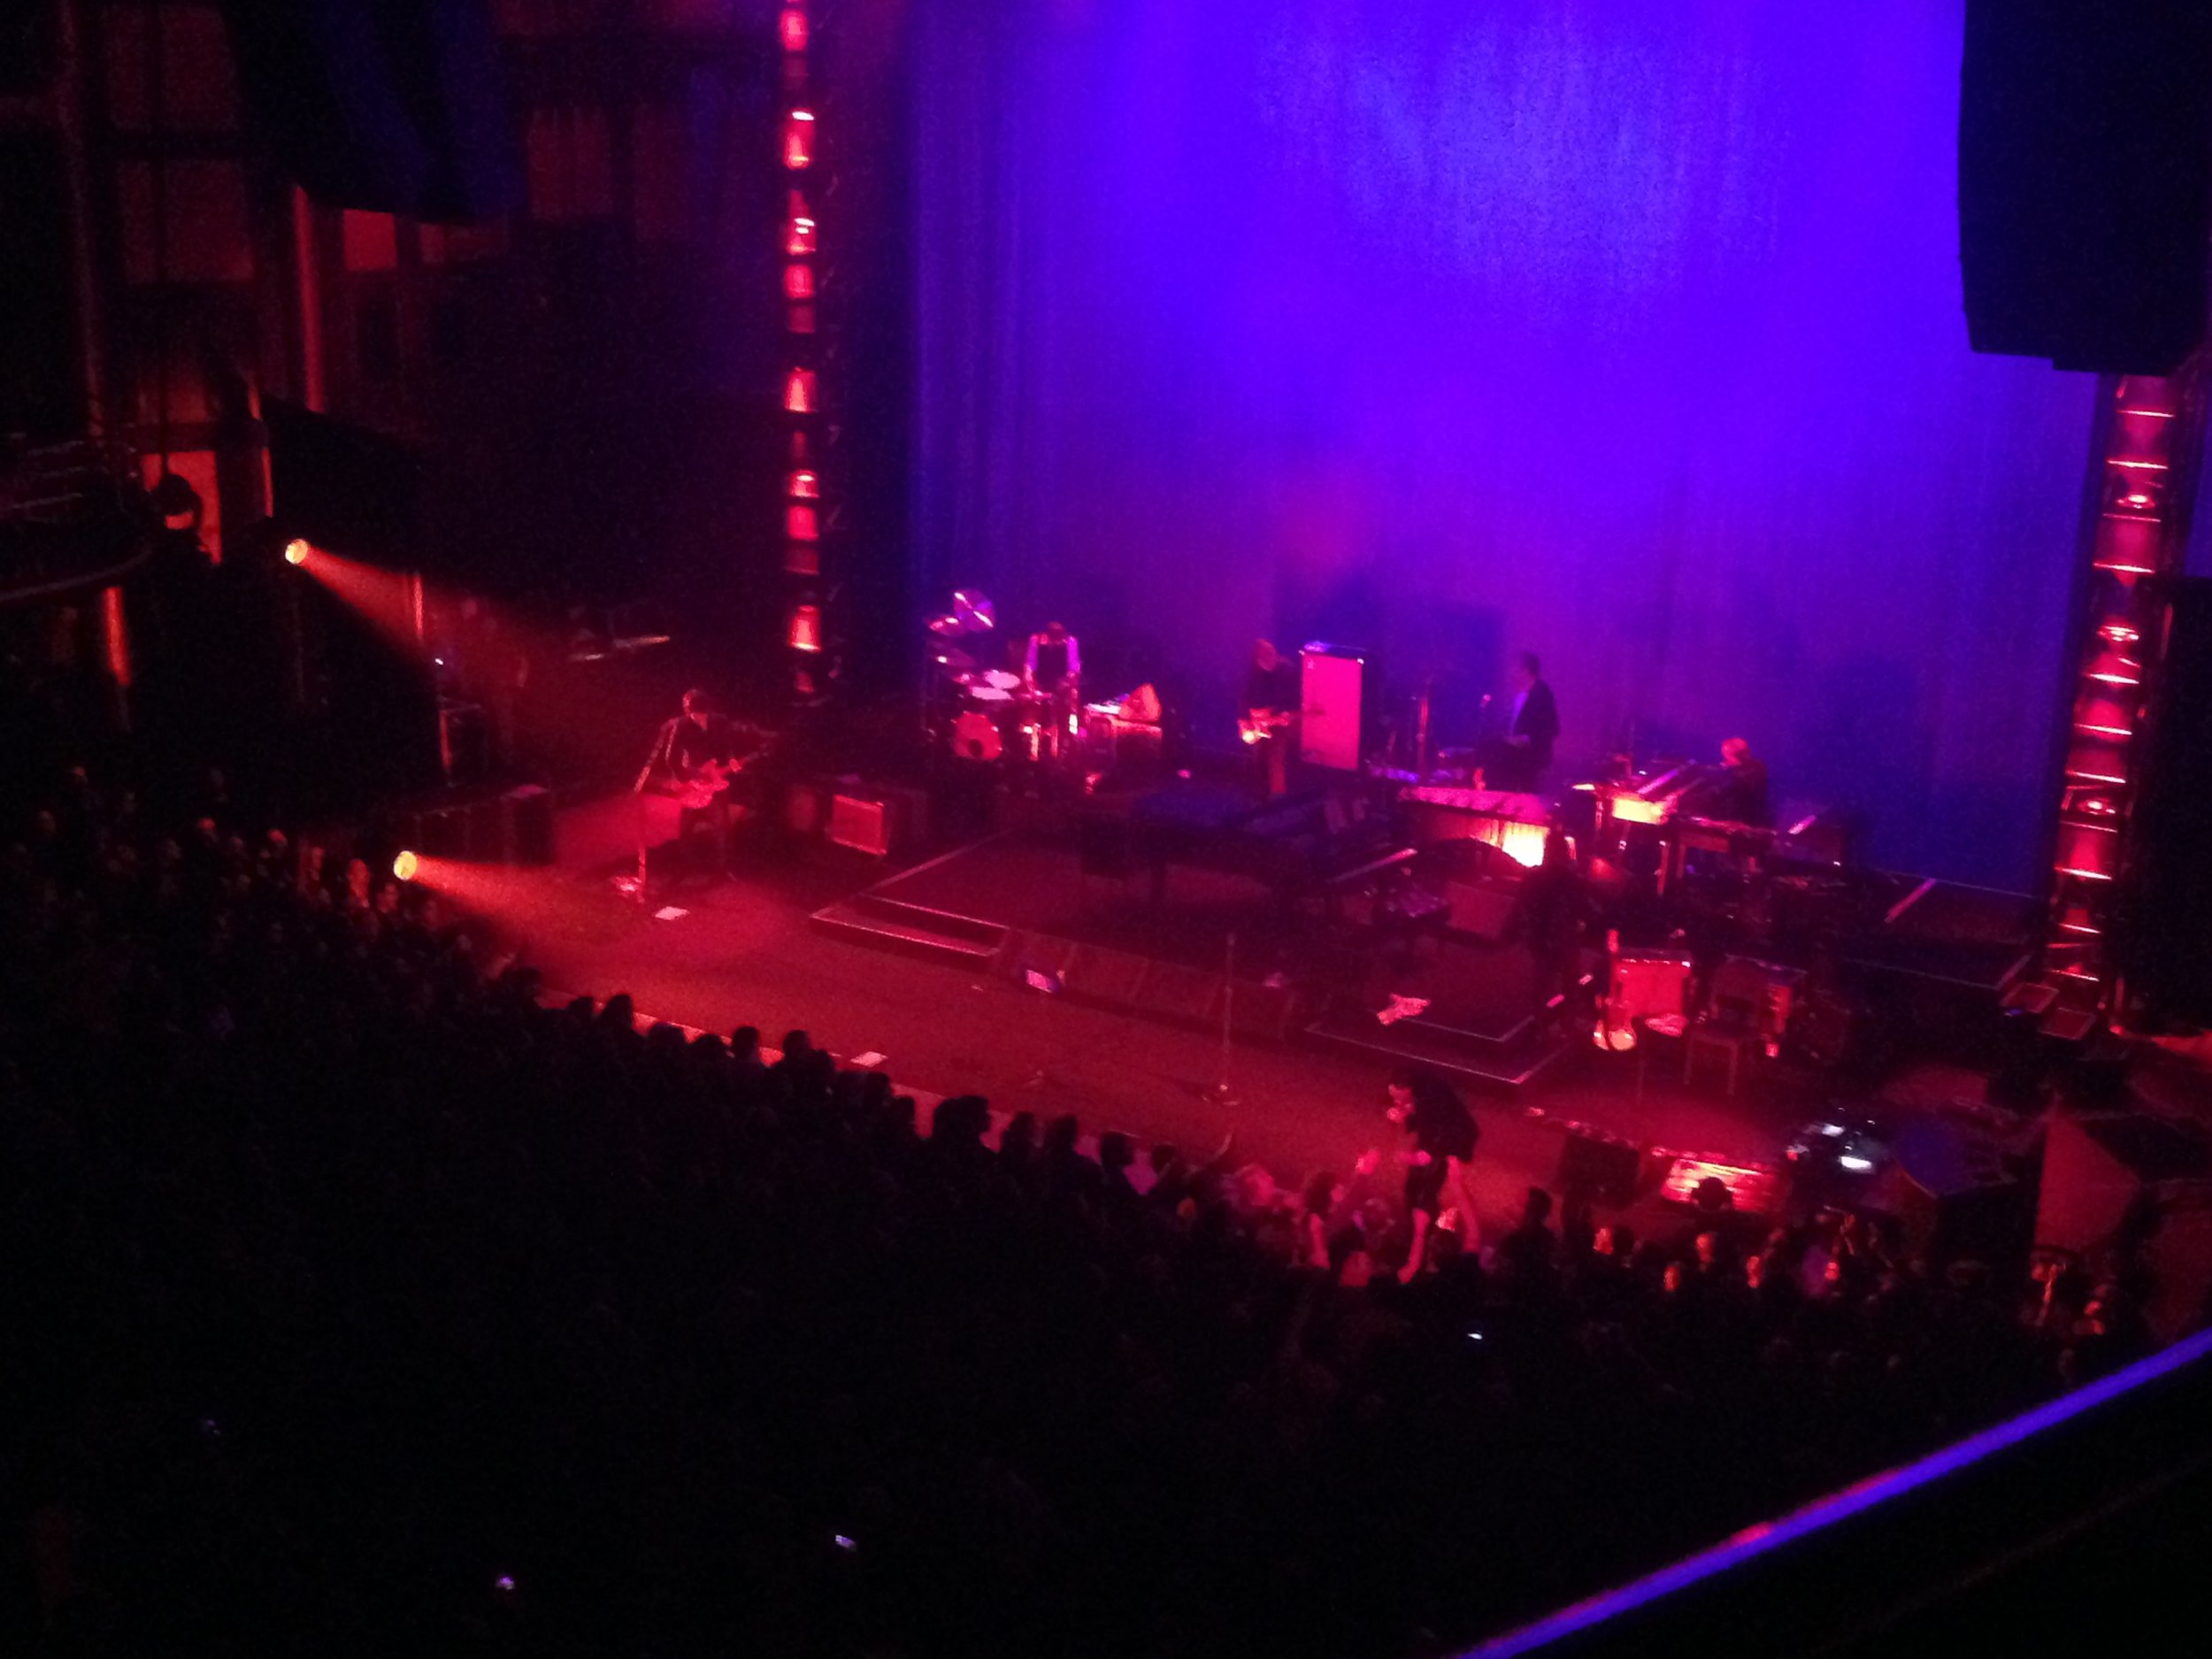 Here's a pic that I took during Red Right Hand. As you can see, I AM VERY FAR AWAY.